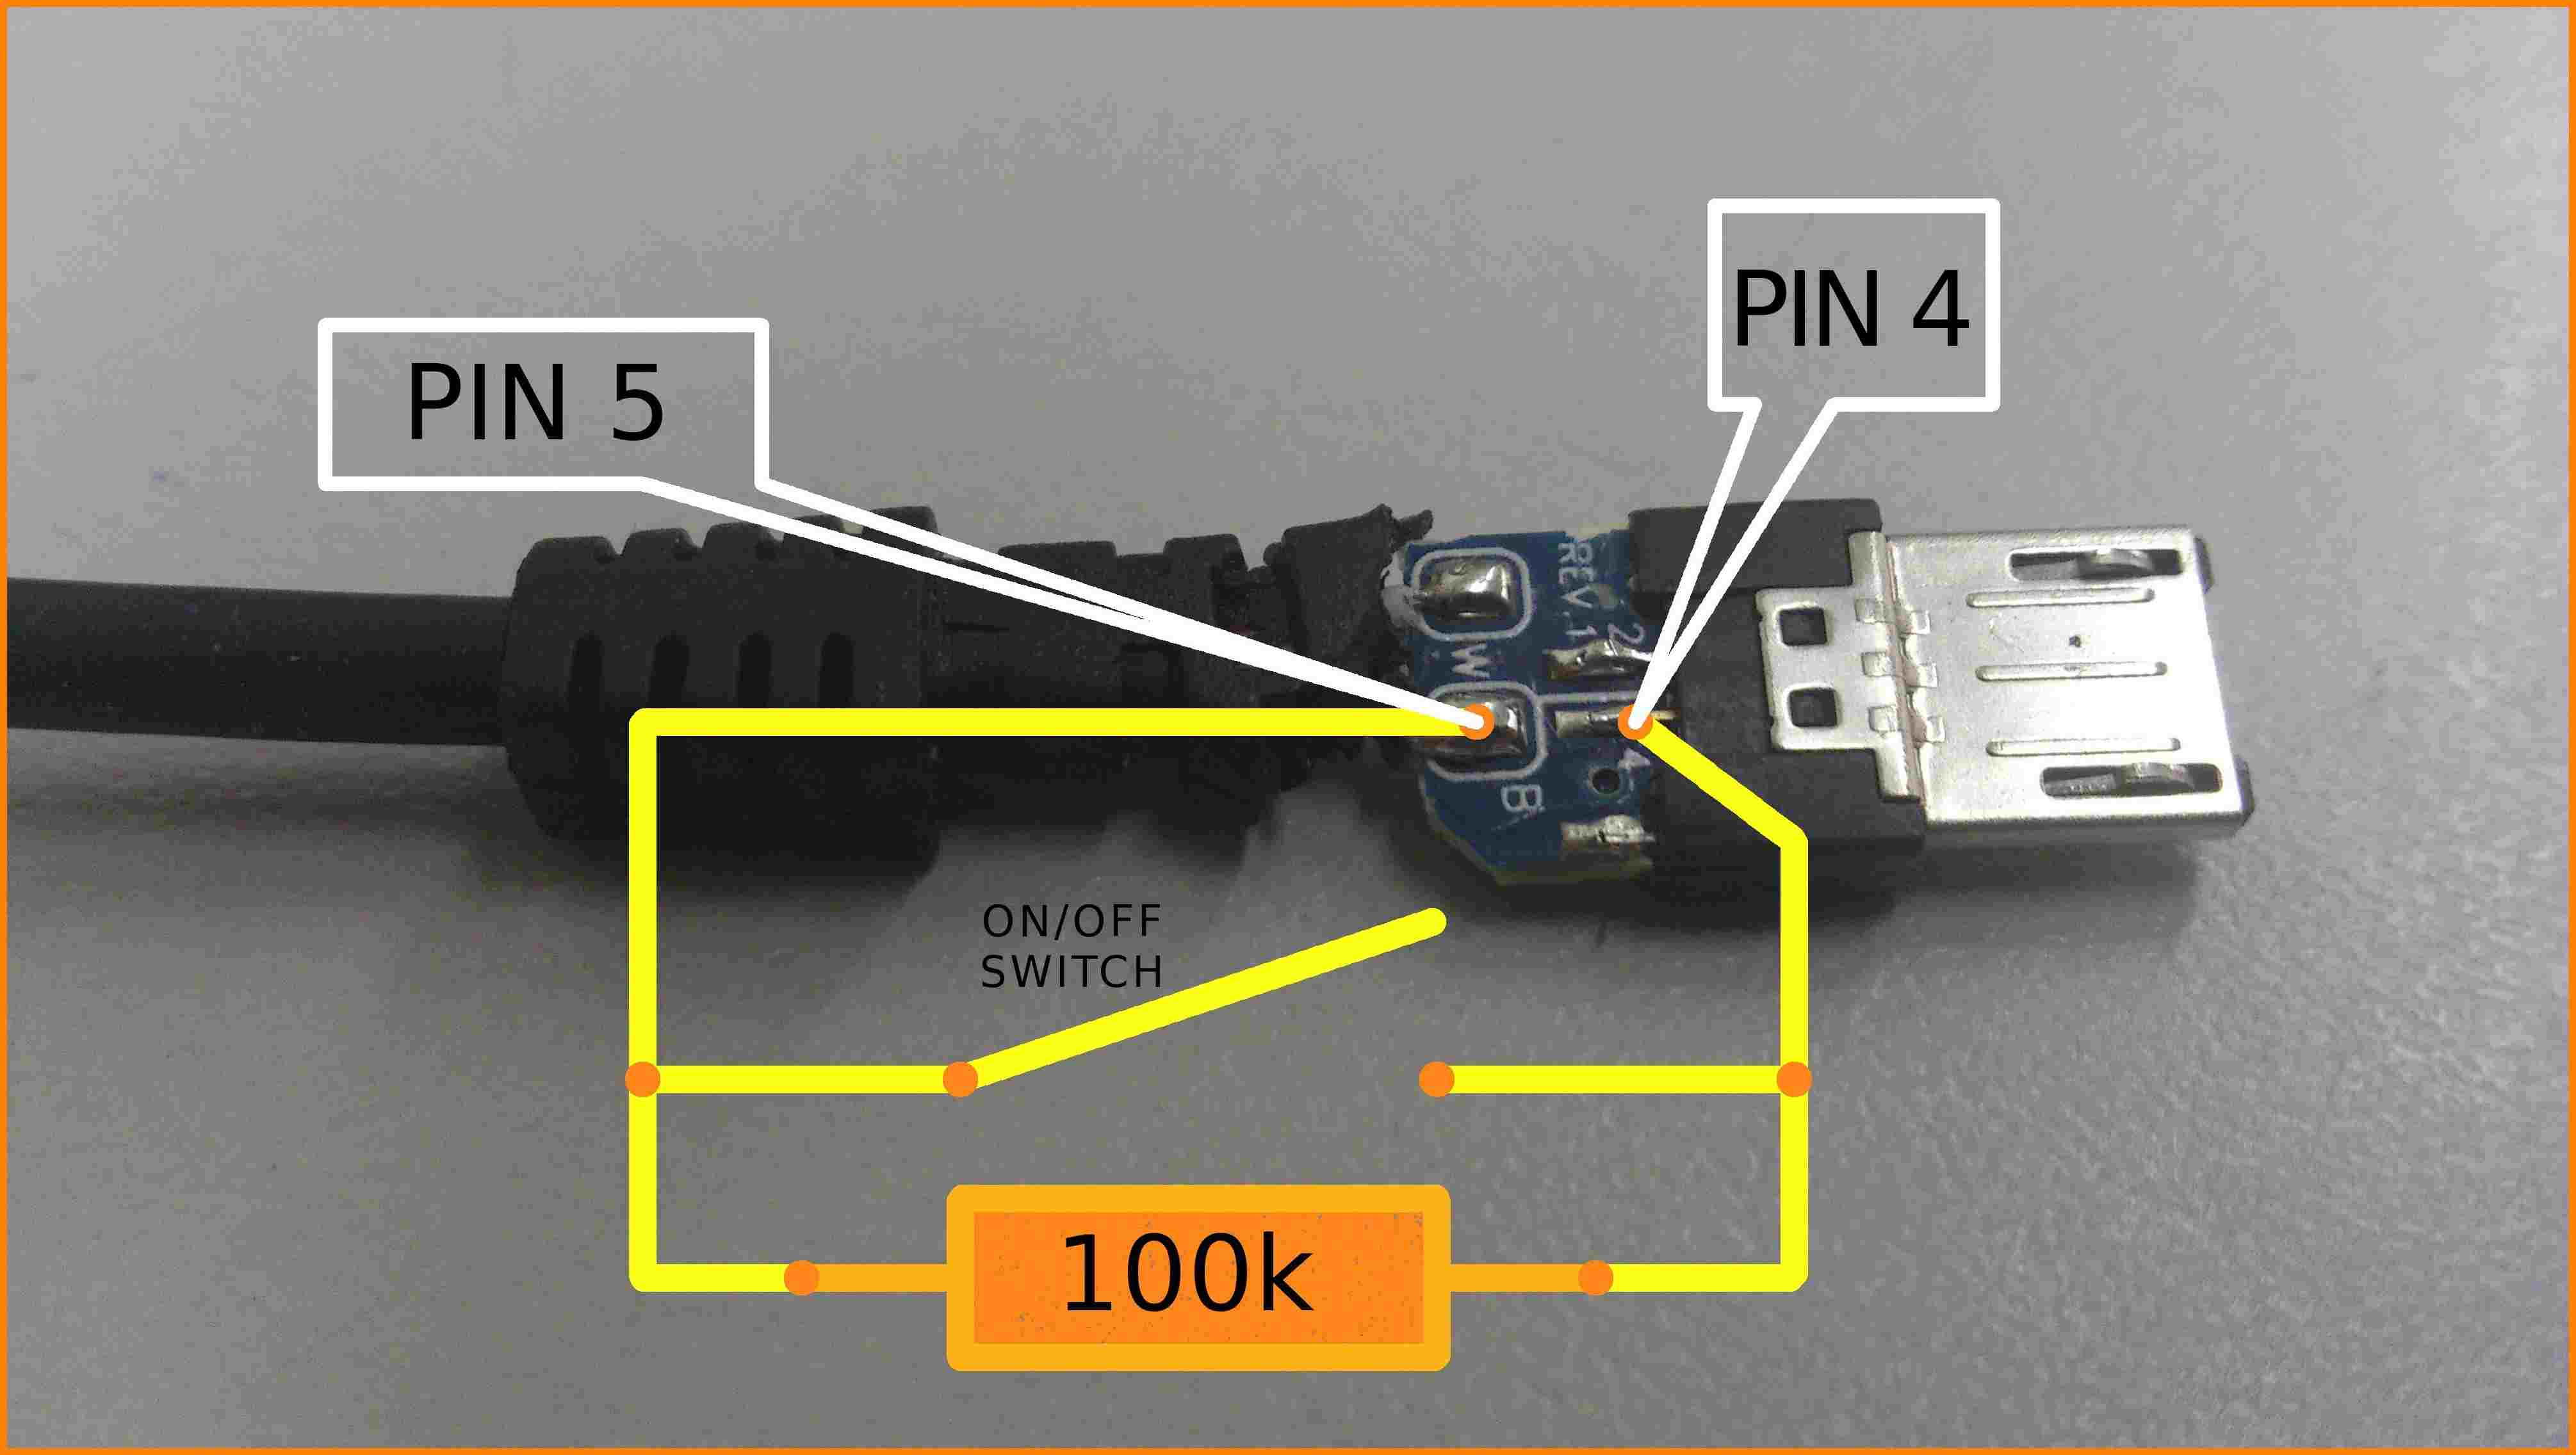 Phone Charger Wire Diagram | Wiring Library - Micro Usb Cable Lightning Wiring Diagram